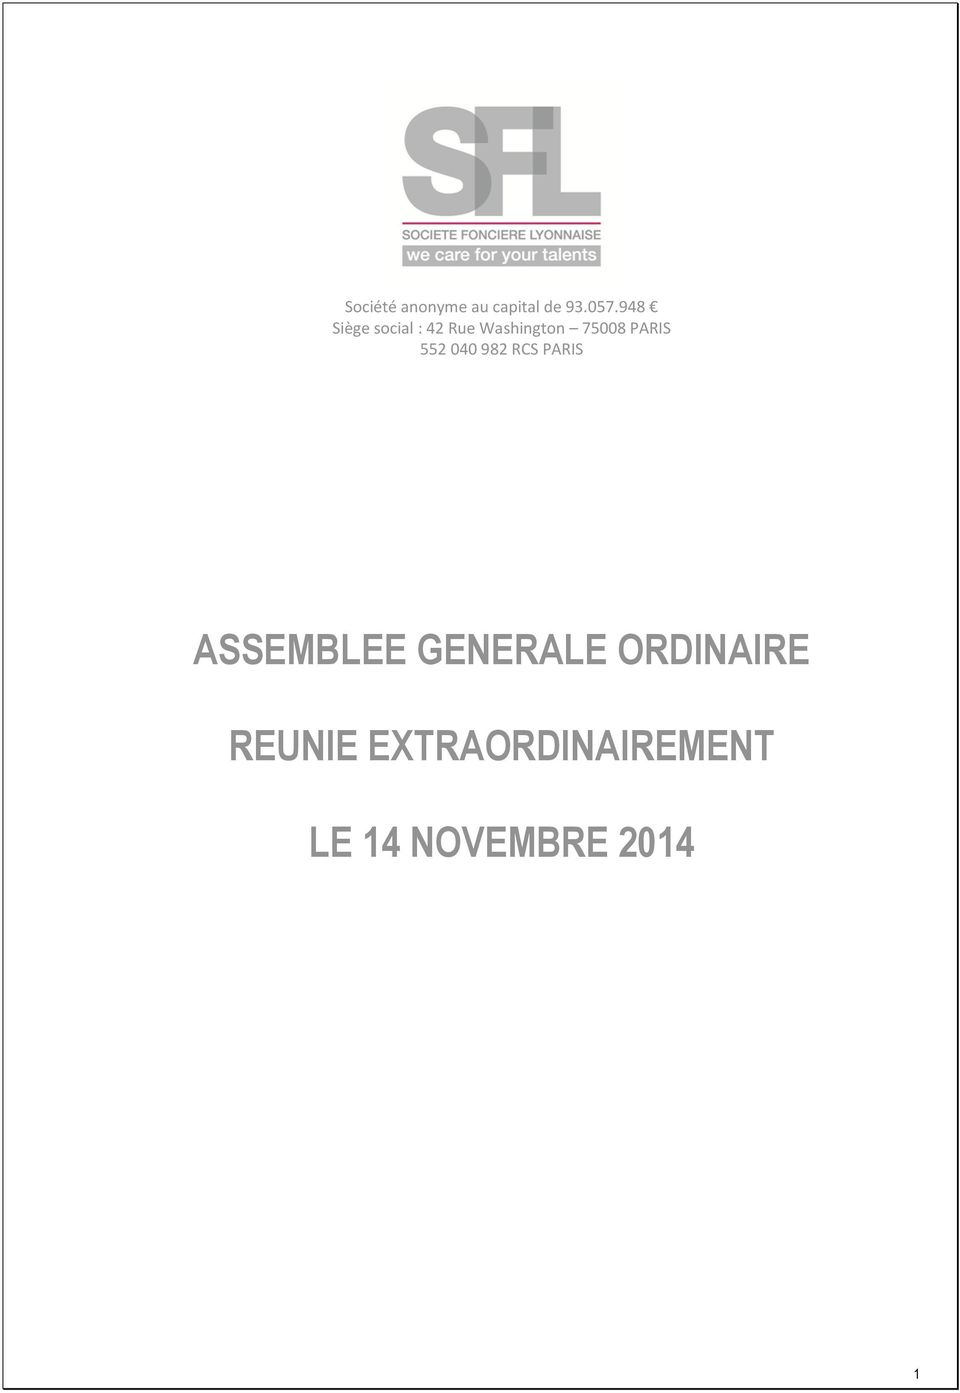 PARIS 552 040 982 RCS PARIS ASSEMBLEE